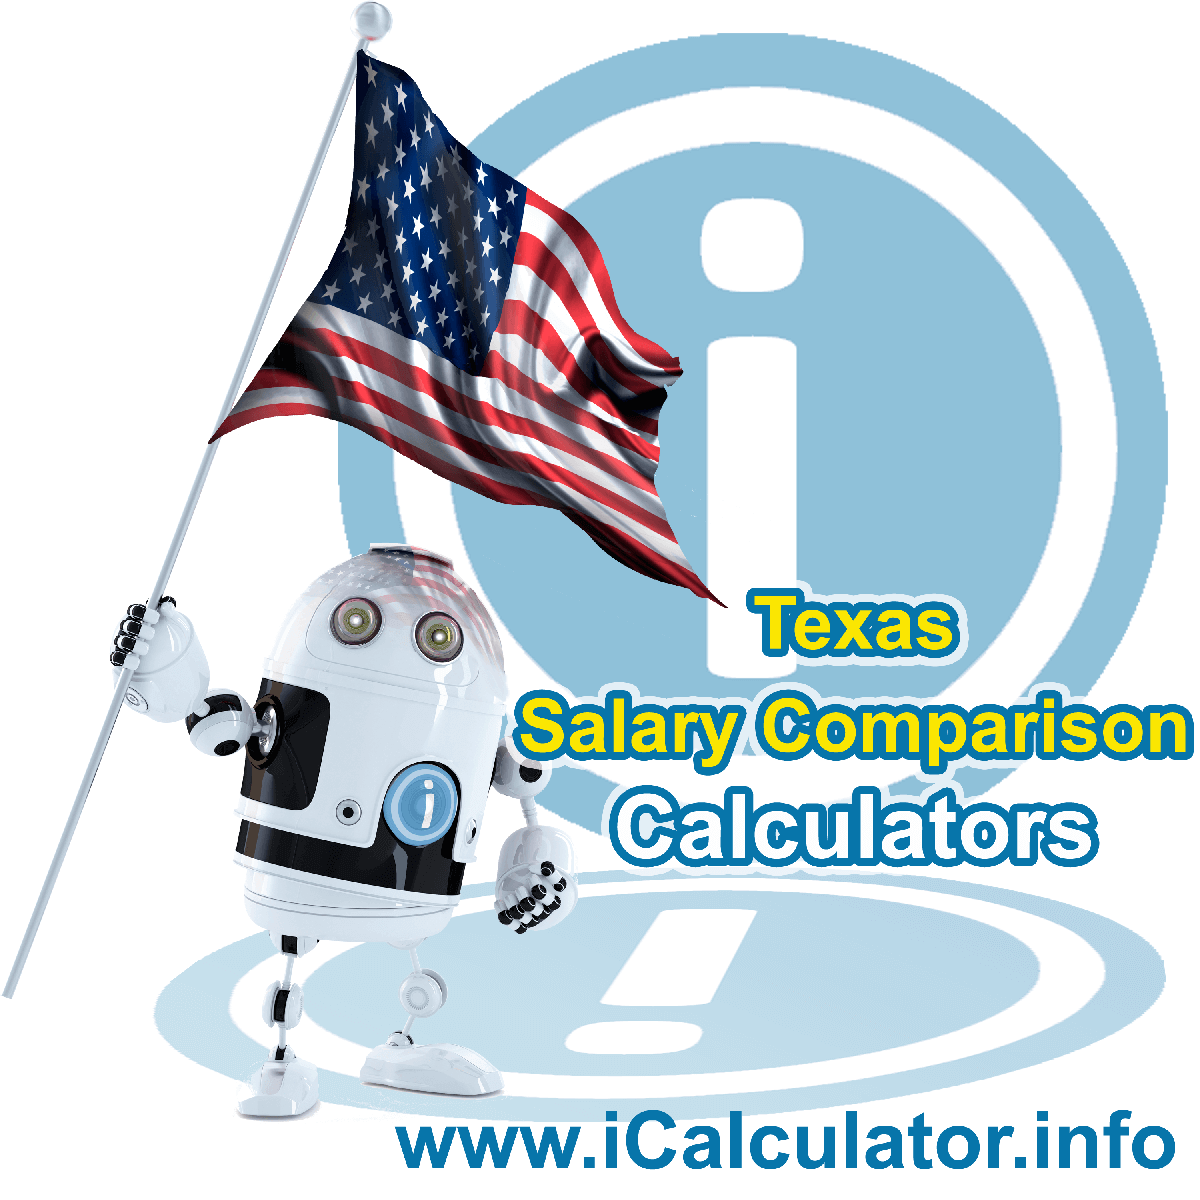 Texas Salary Comparison Calculator 2020 | iCalculator | The Texas Salary Comparison Calculator allows you to quickly calculate and compare upto 6 salaries in Texas or between other states for the 2020 tax year and historical tax years. Its an excellent tool for jobseekers, pay raise comparison and comparison of salaries between different US States